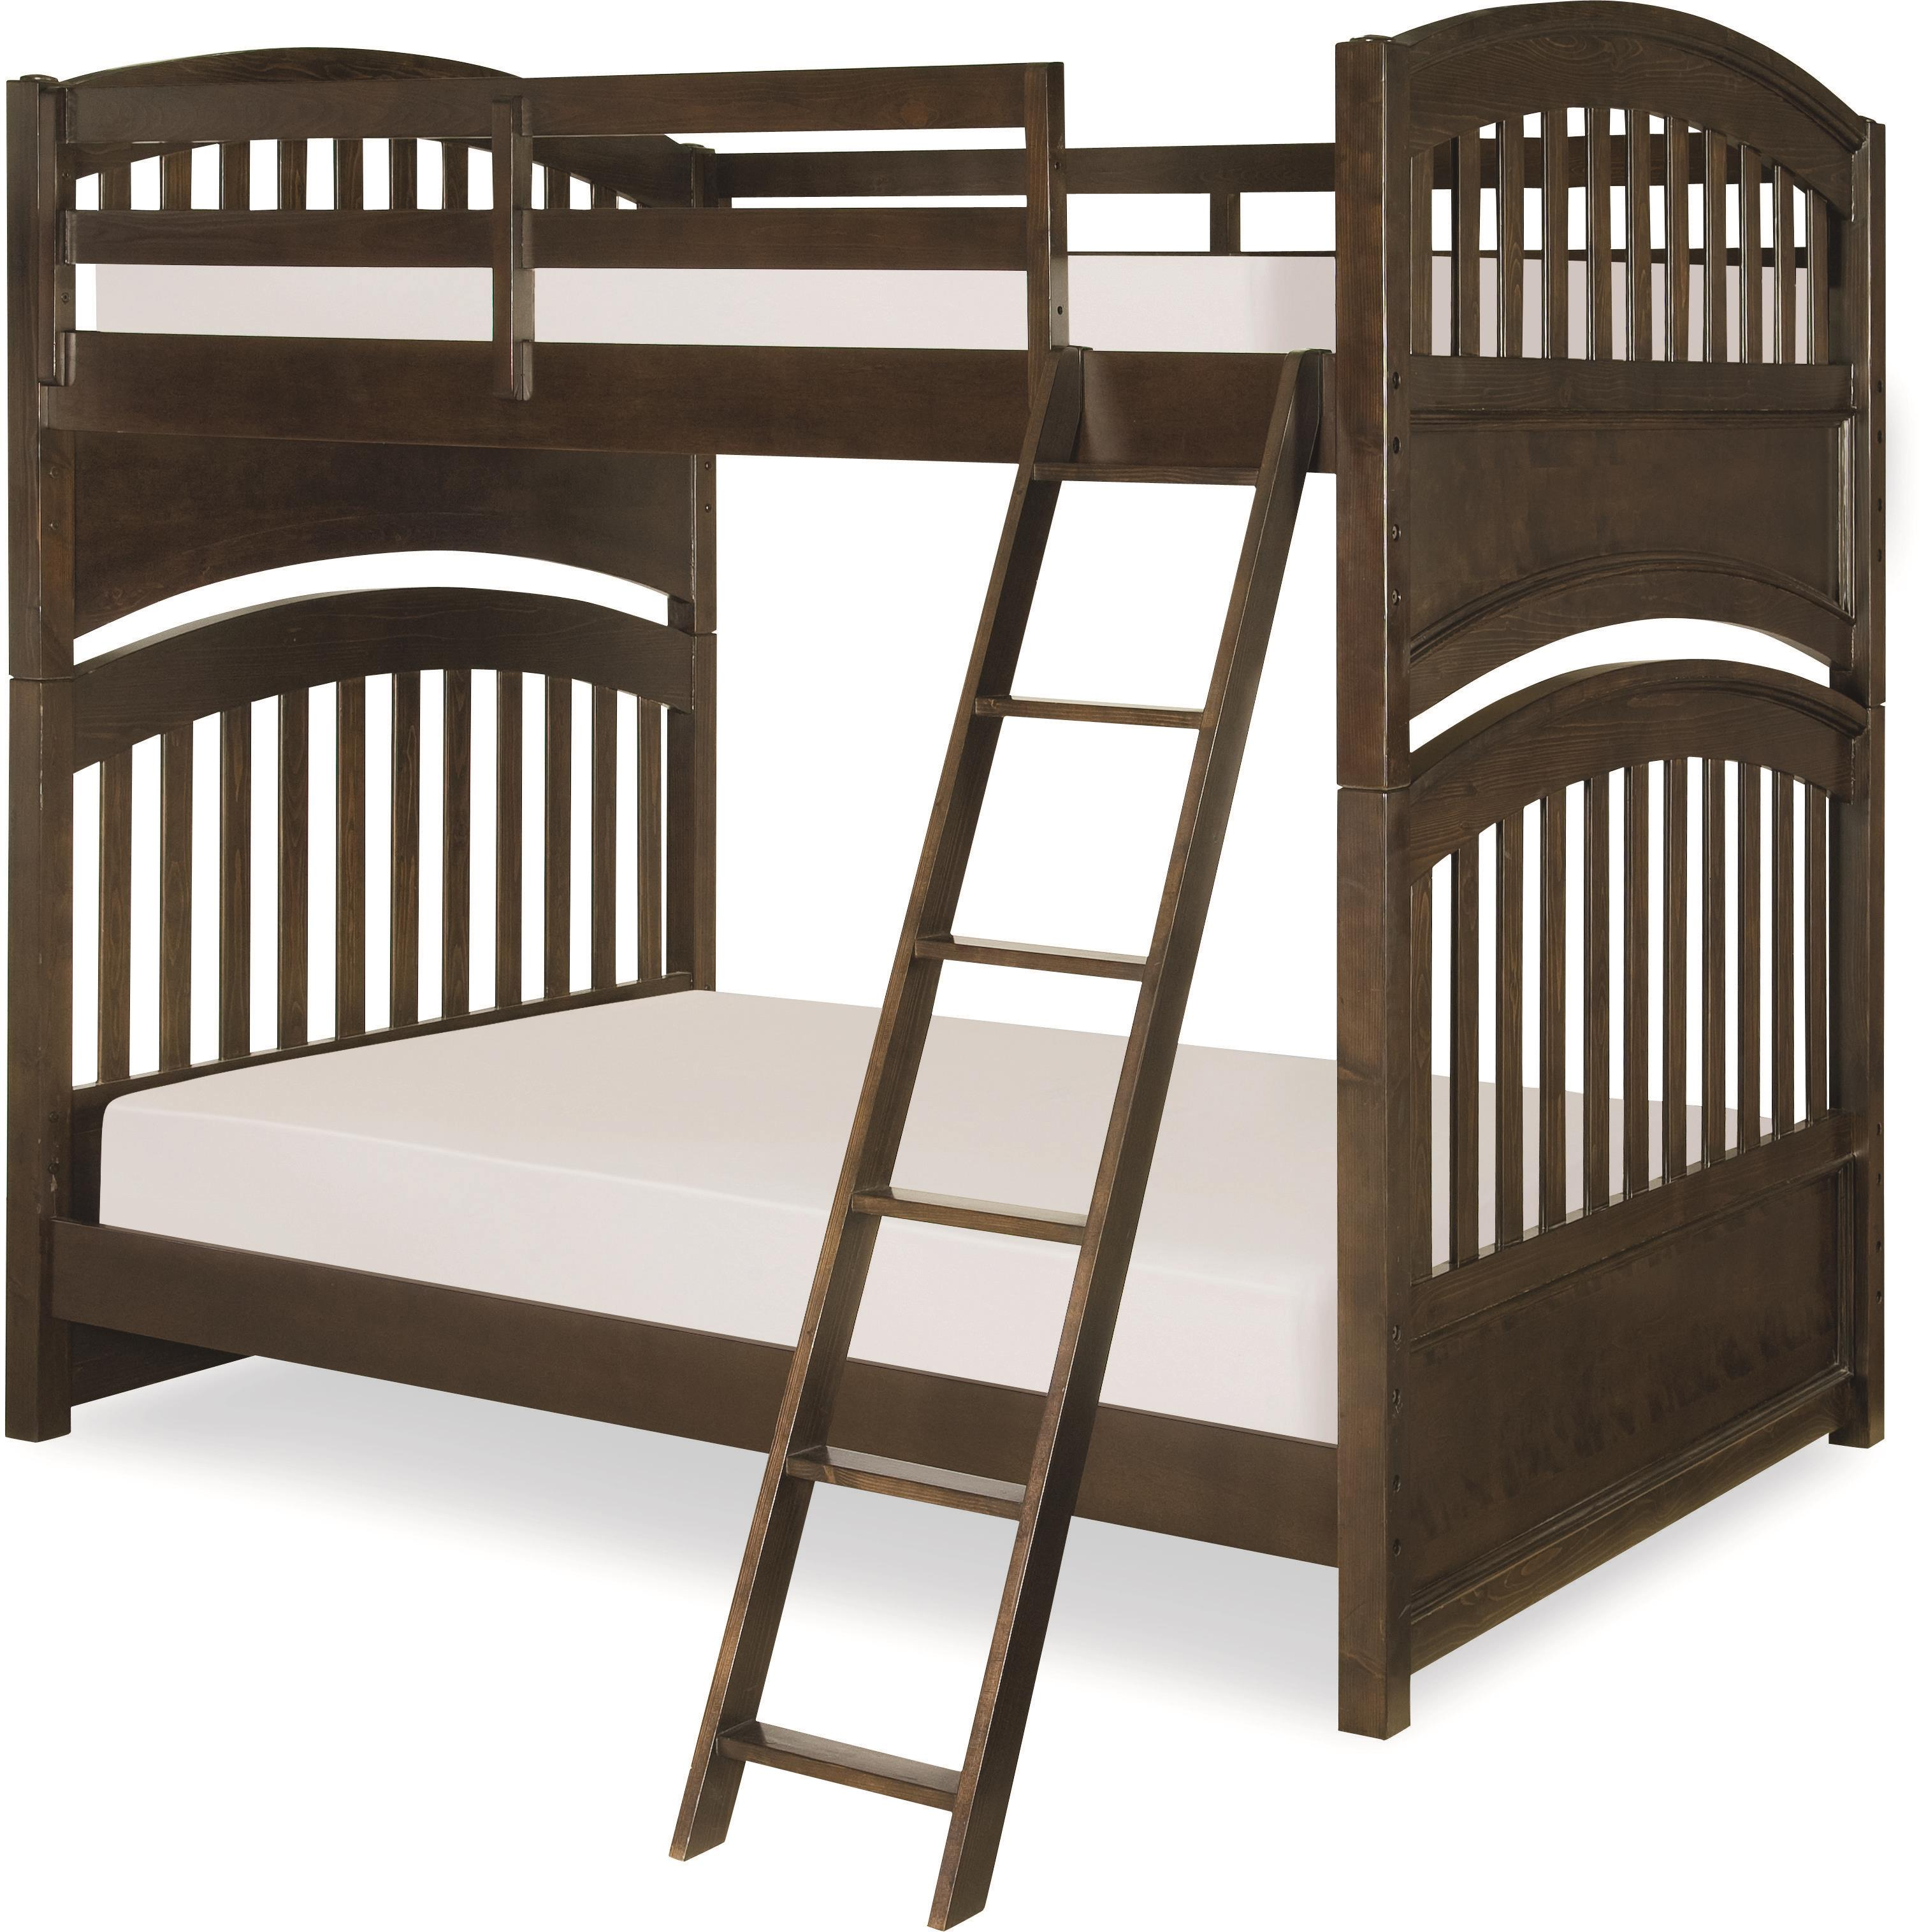 Legacy Classic Kids Academy Twin over Twin Bunk Bed - Item Number: 5810-8110K